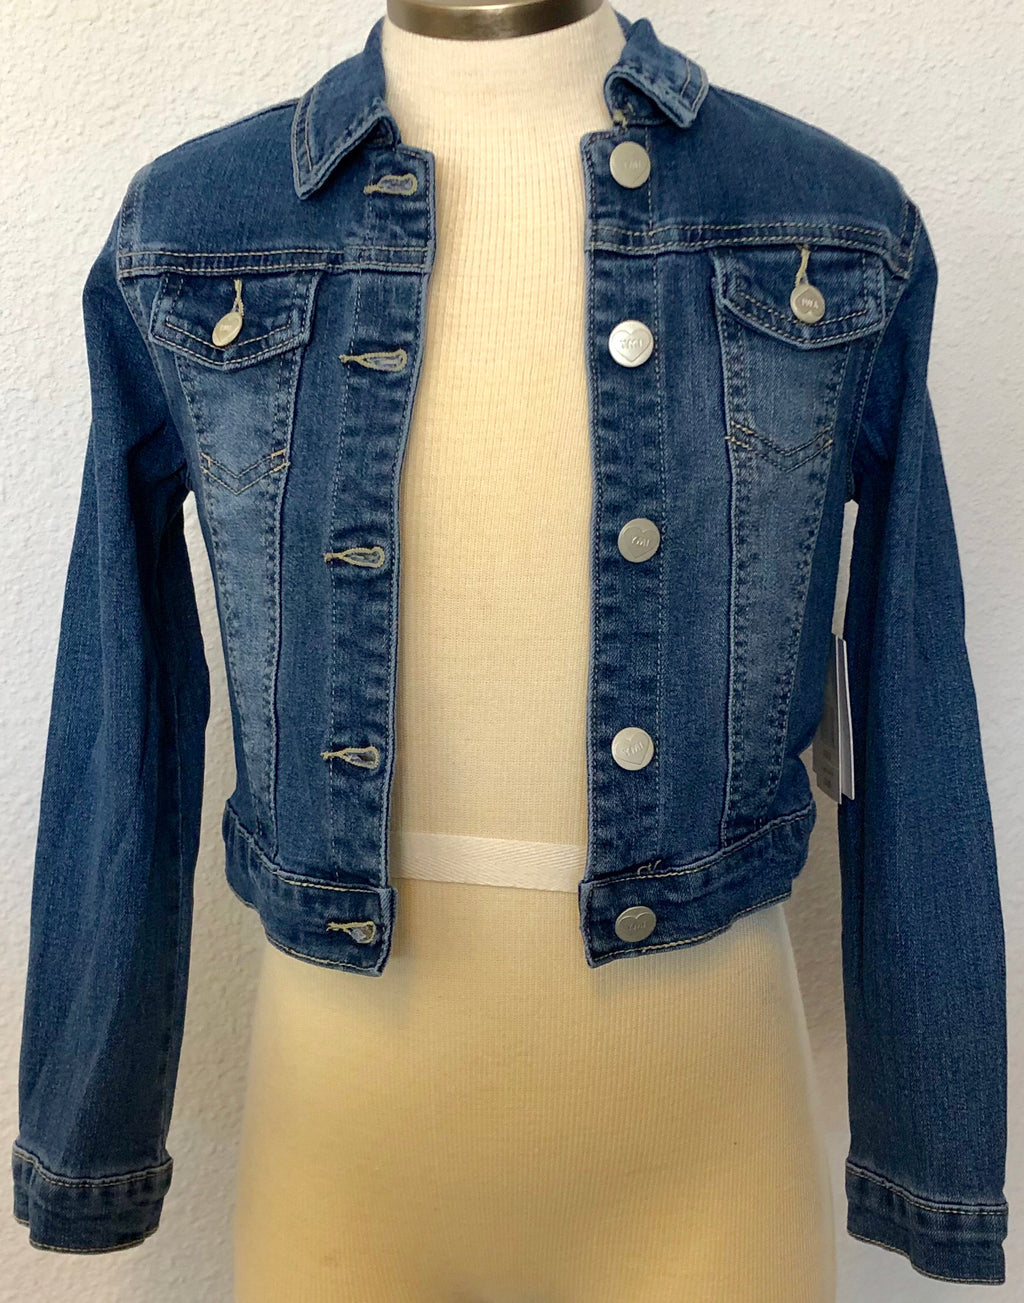 K DENIM JACKET